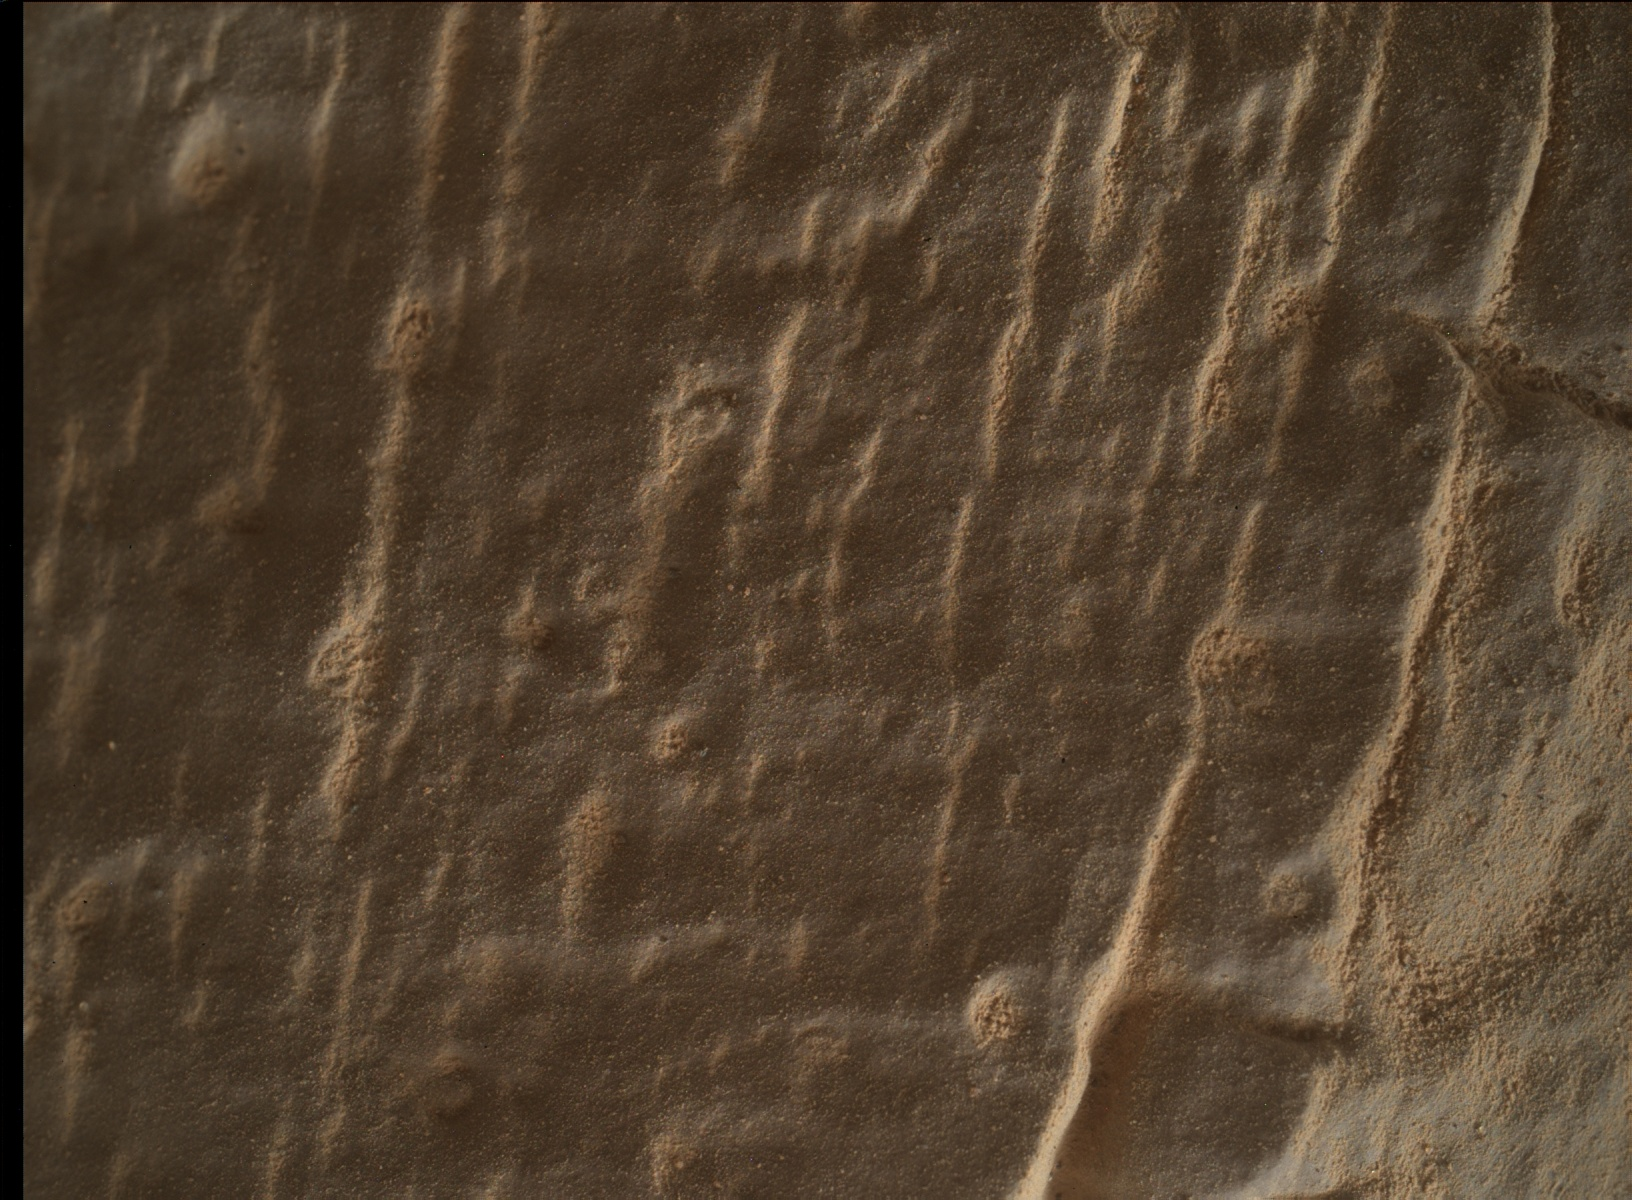 Nasa's Mars rover Curiosity acquired this image using its Mars Hand Lens Imager (MAHLI) on Sol 2470